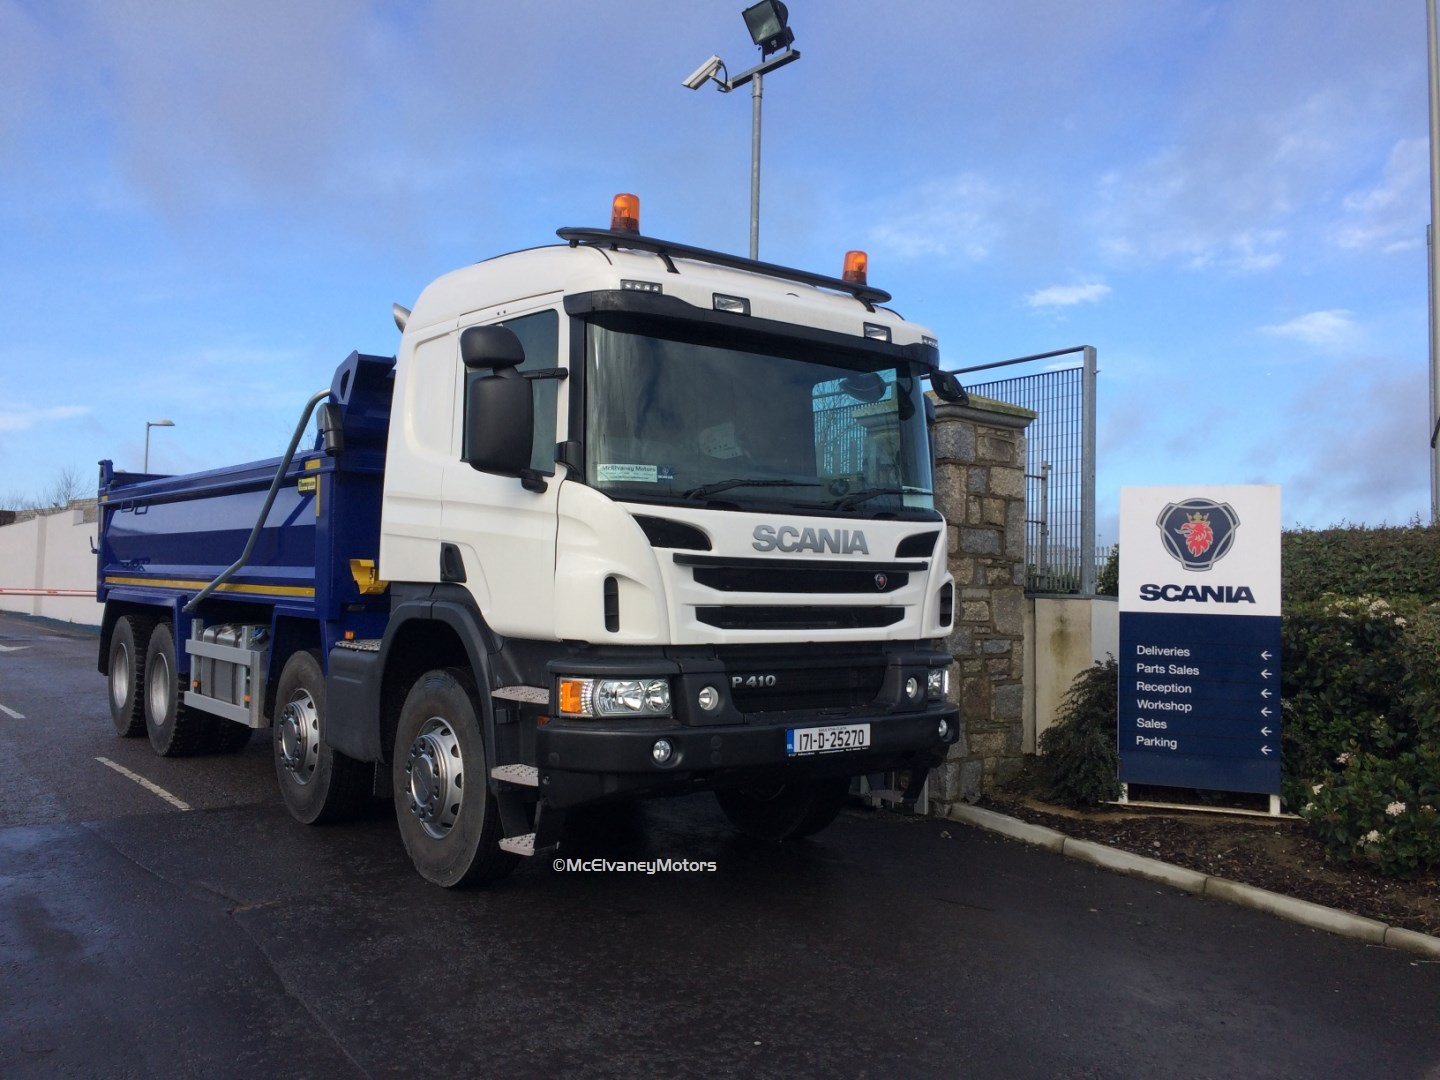 Another New Scania P410 Tipper for John Watson Plant Hire